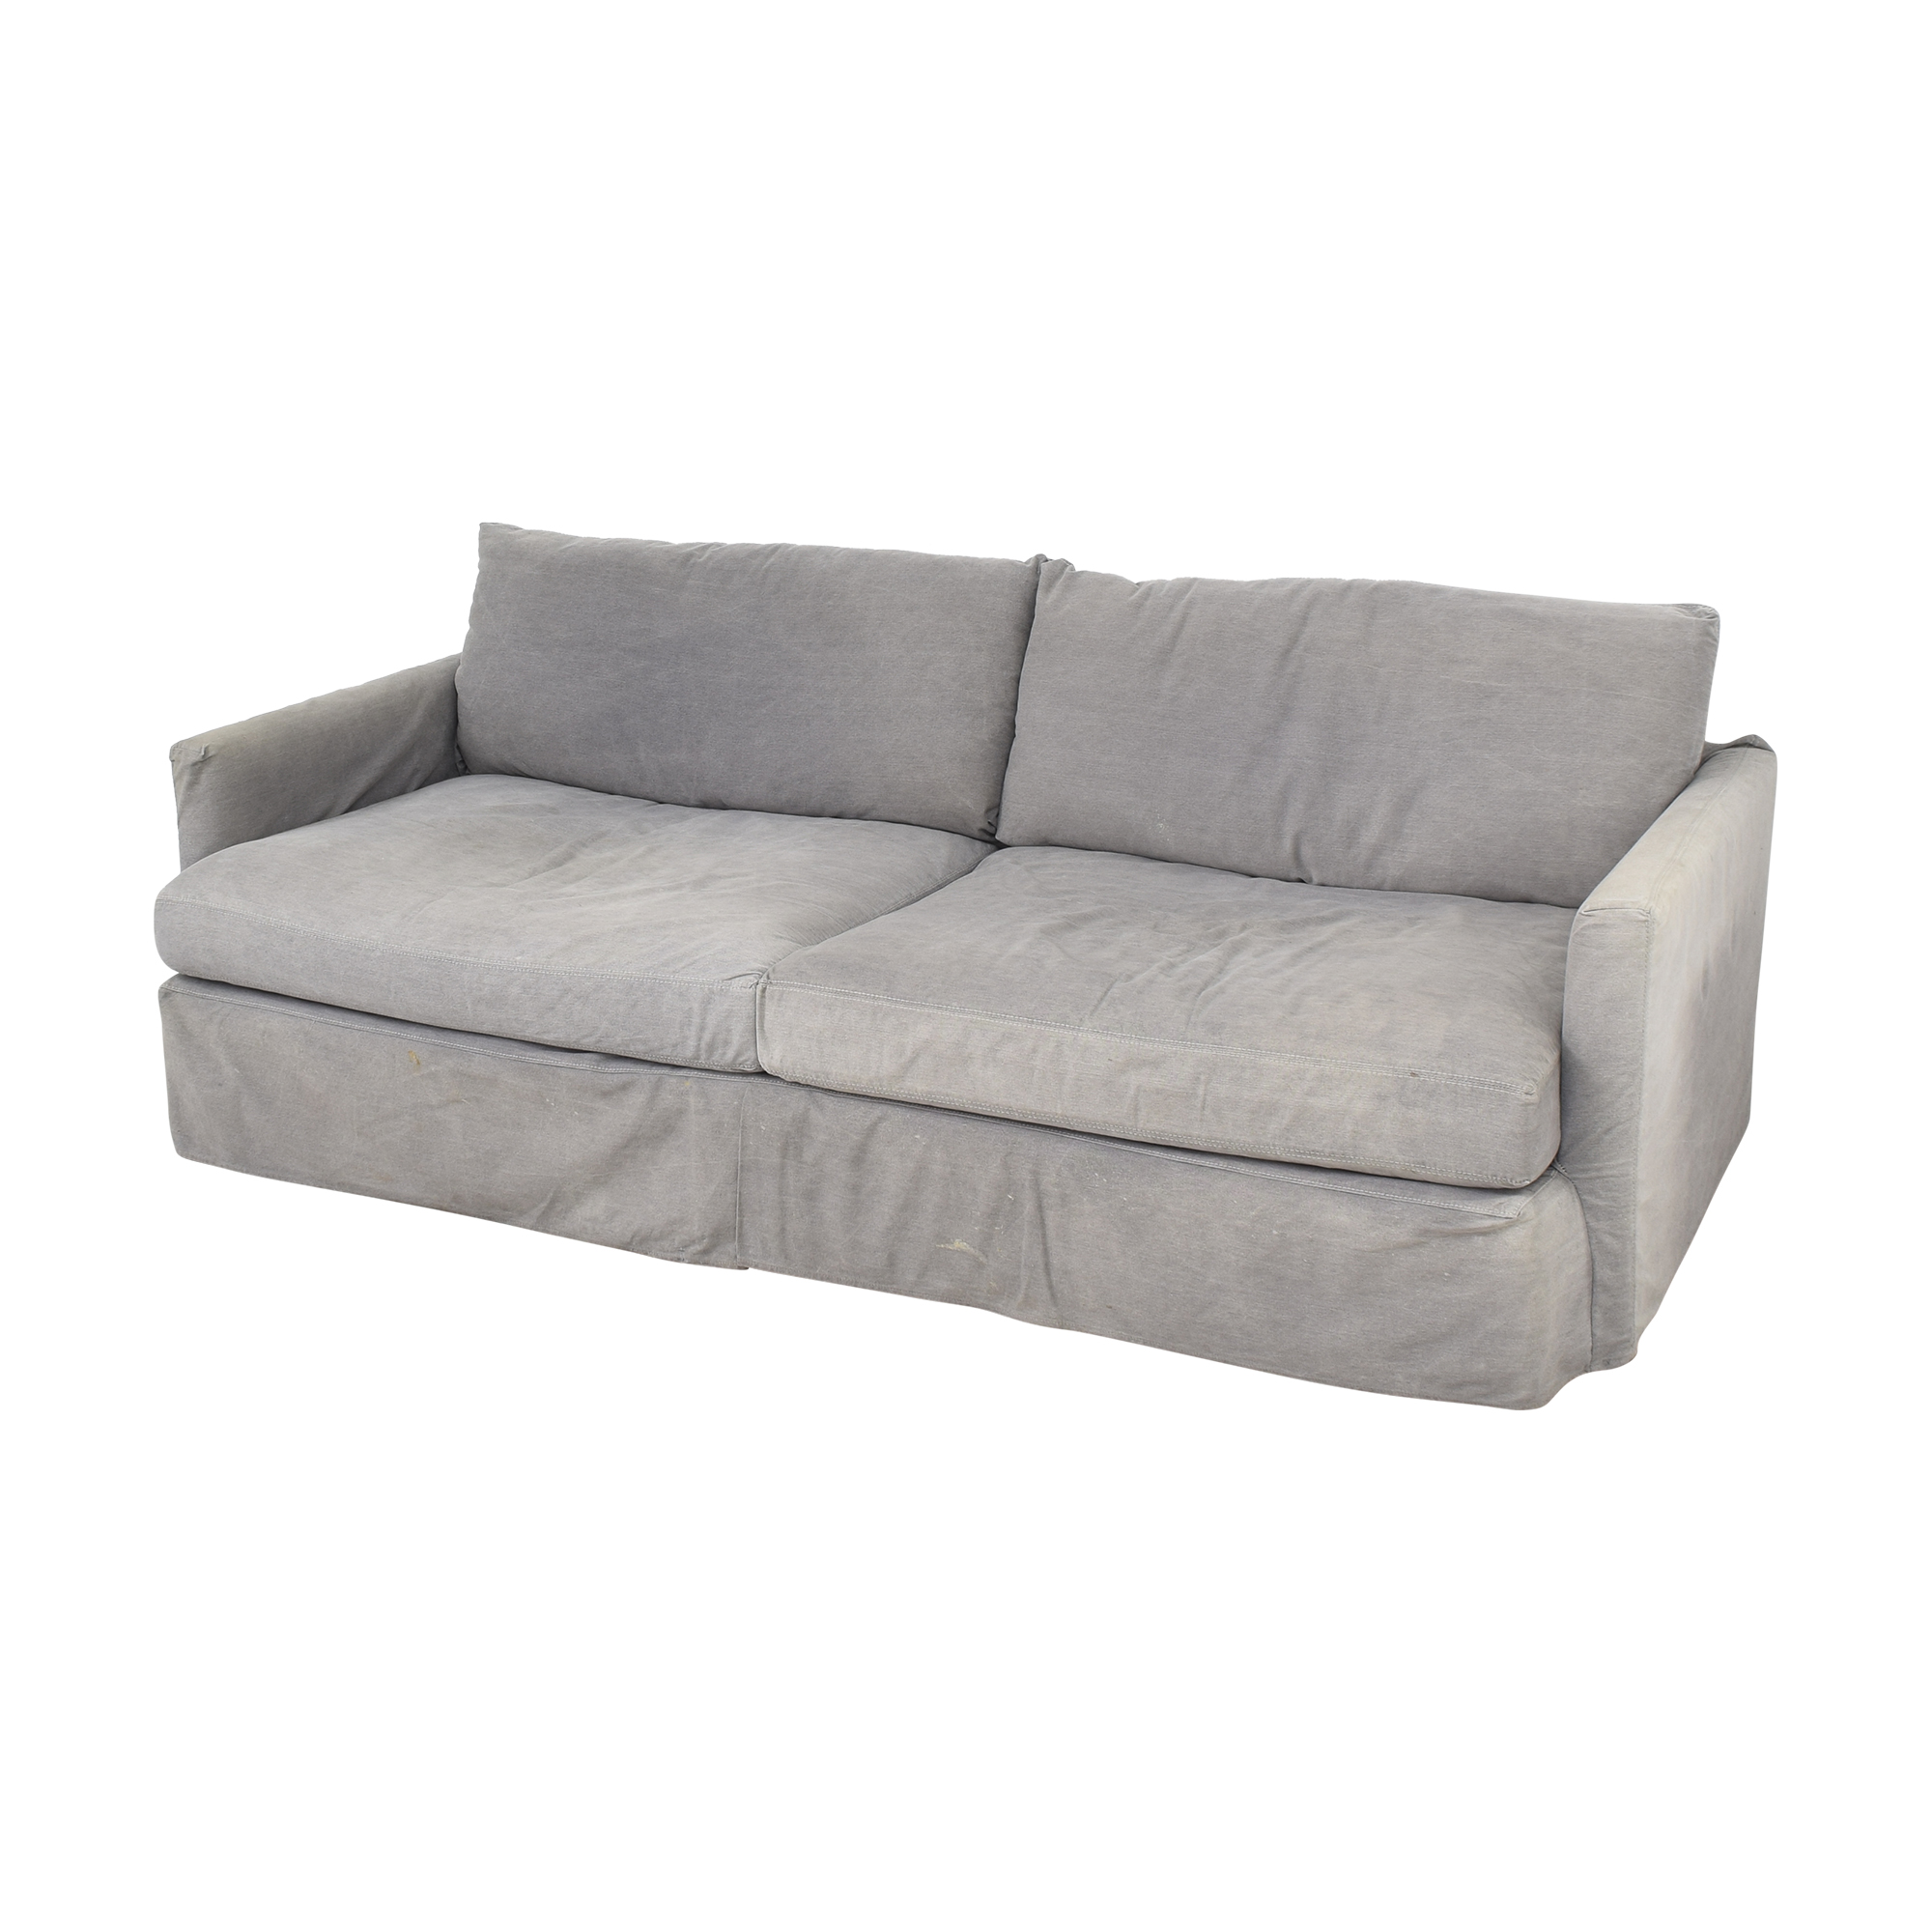 Crate & Barrel Crate & Barrel Lounge II Sofa with Two Ottomans on Casters